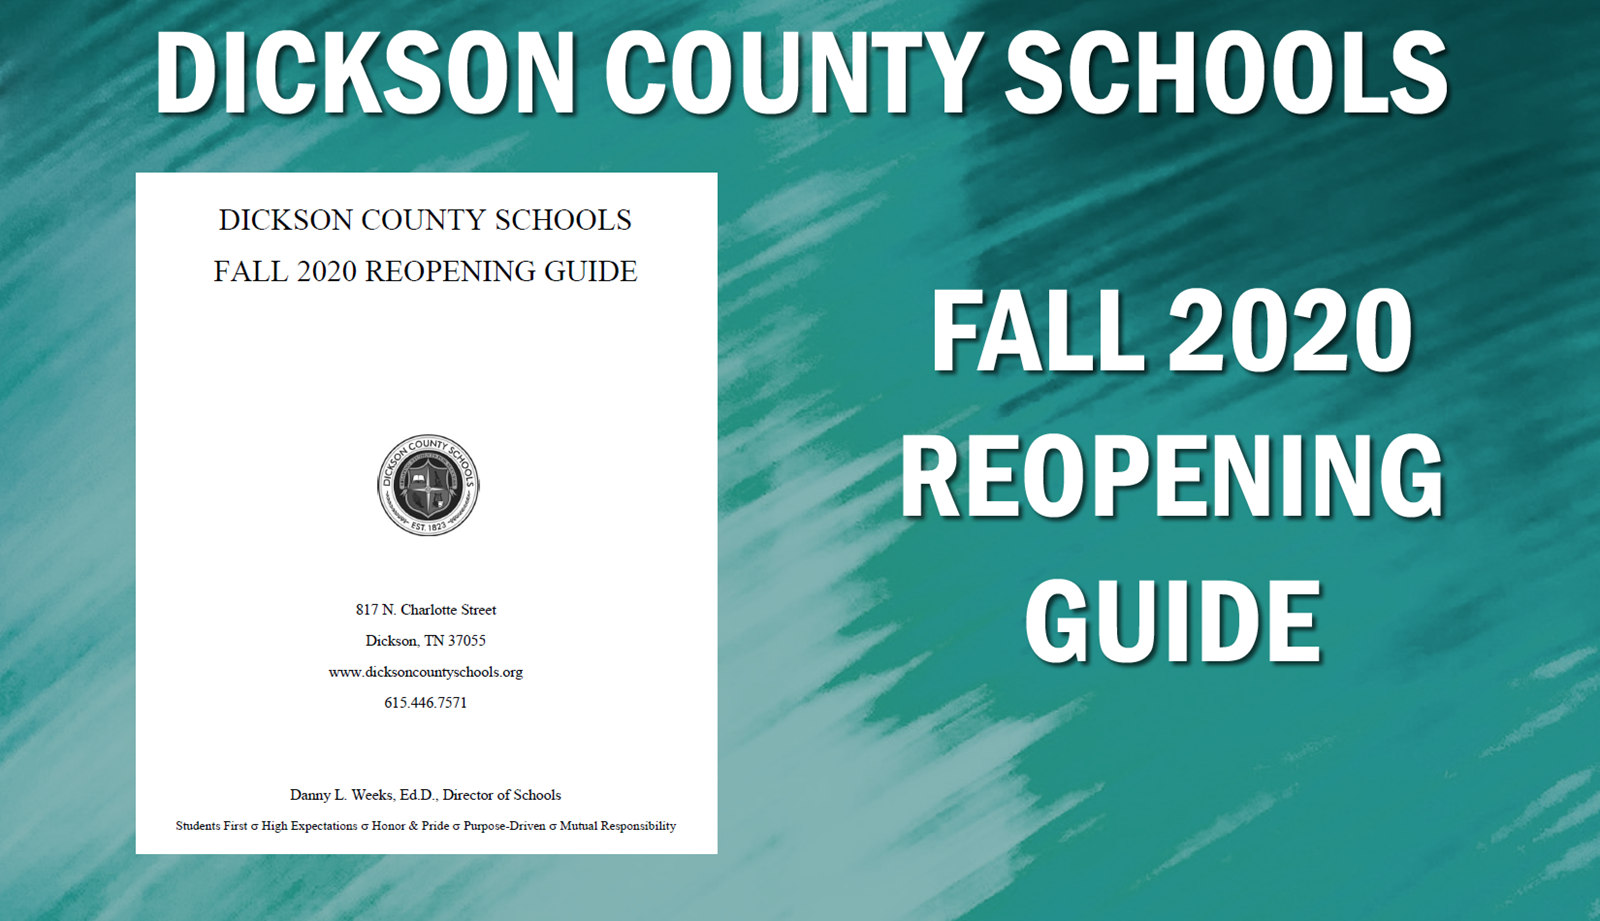 Fall 2020 Reopening Guide